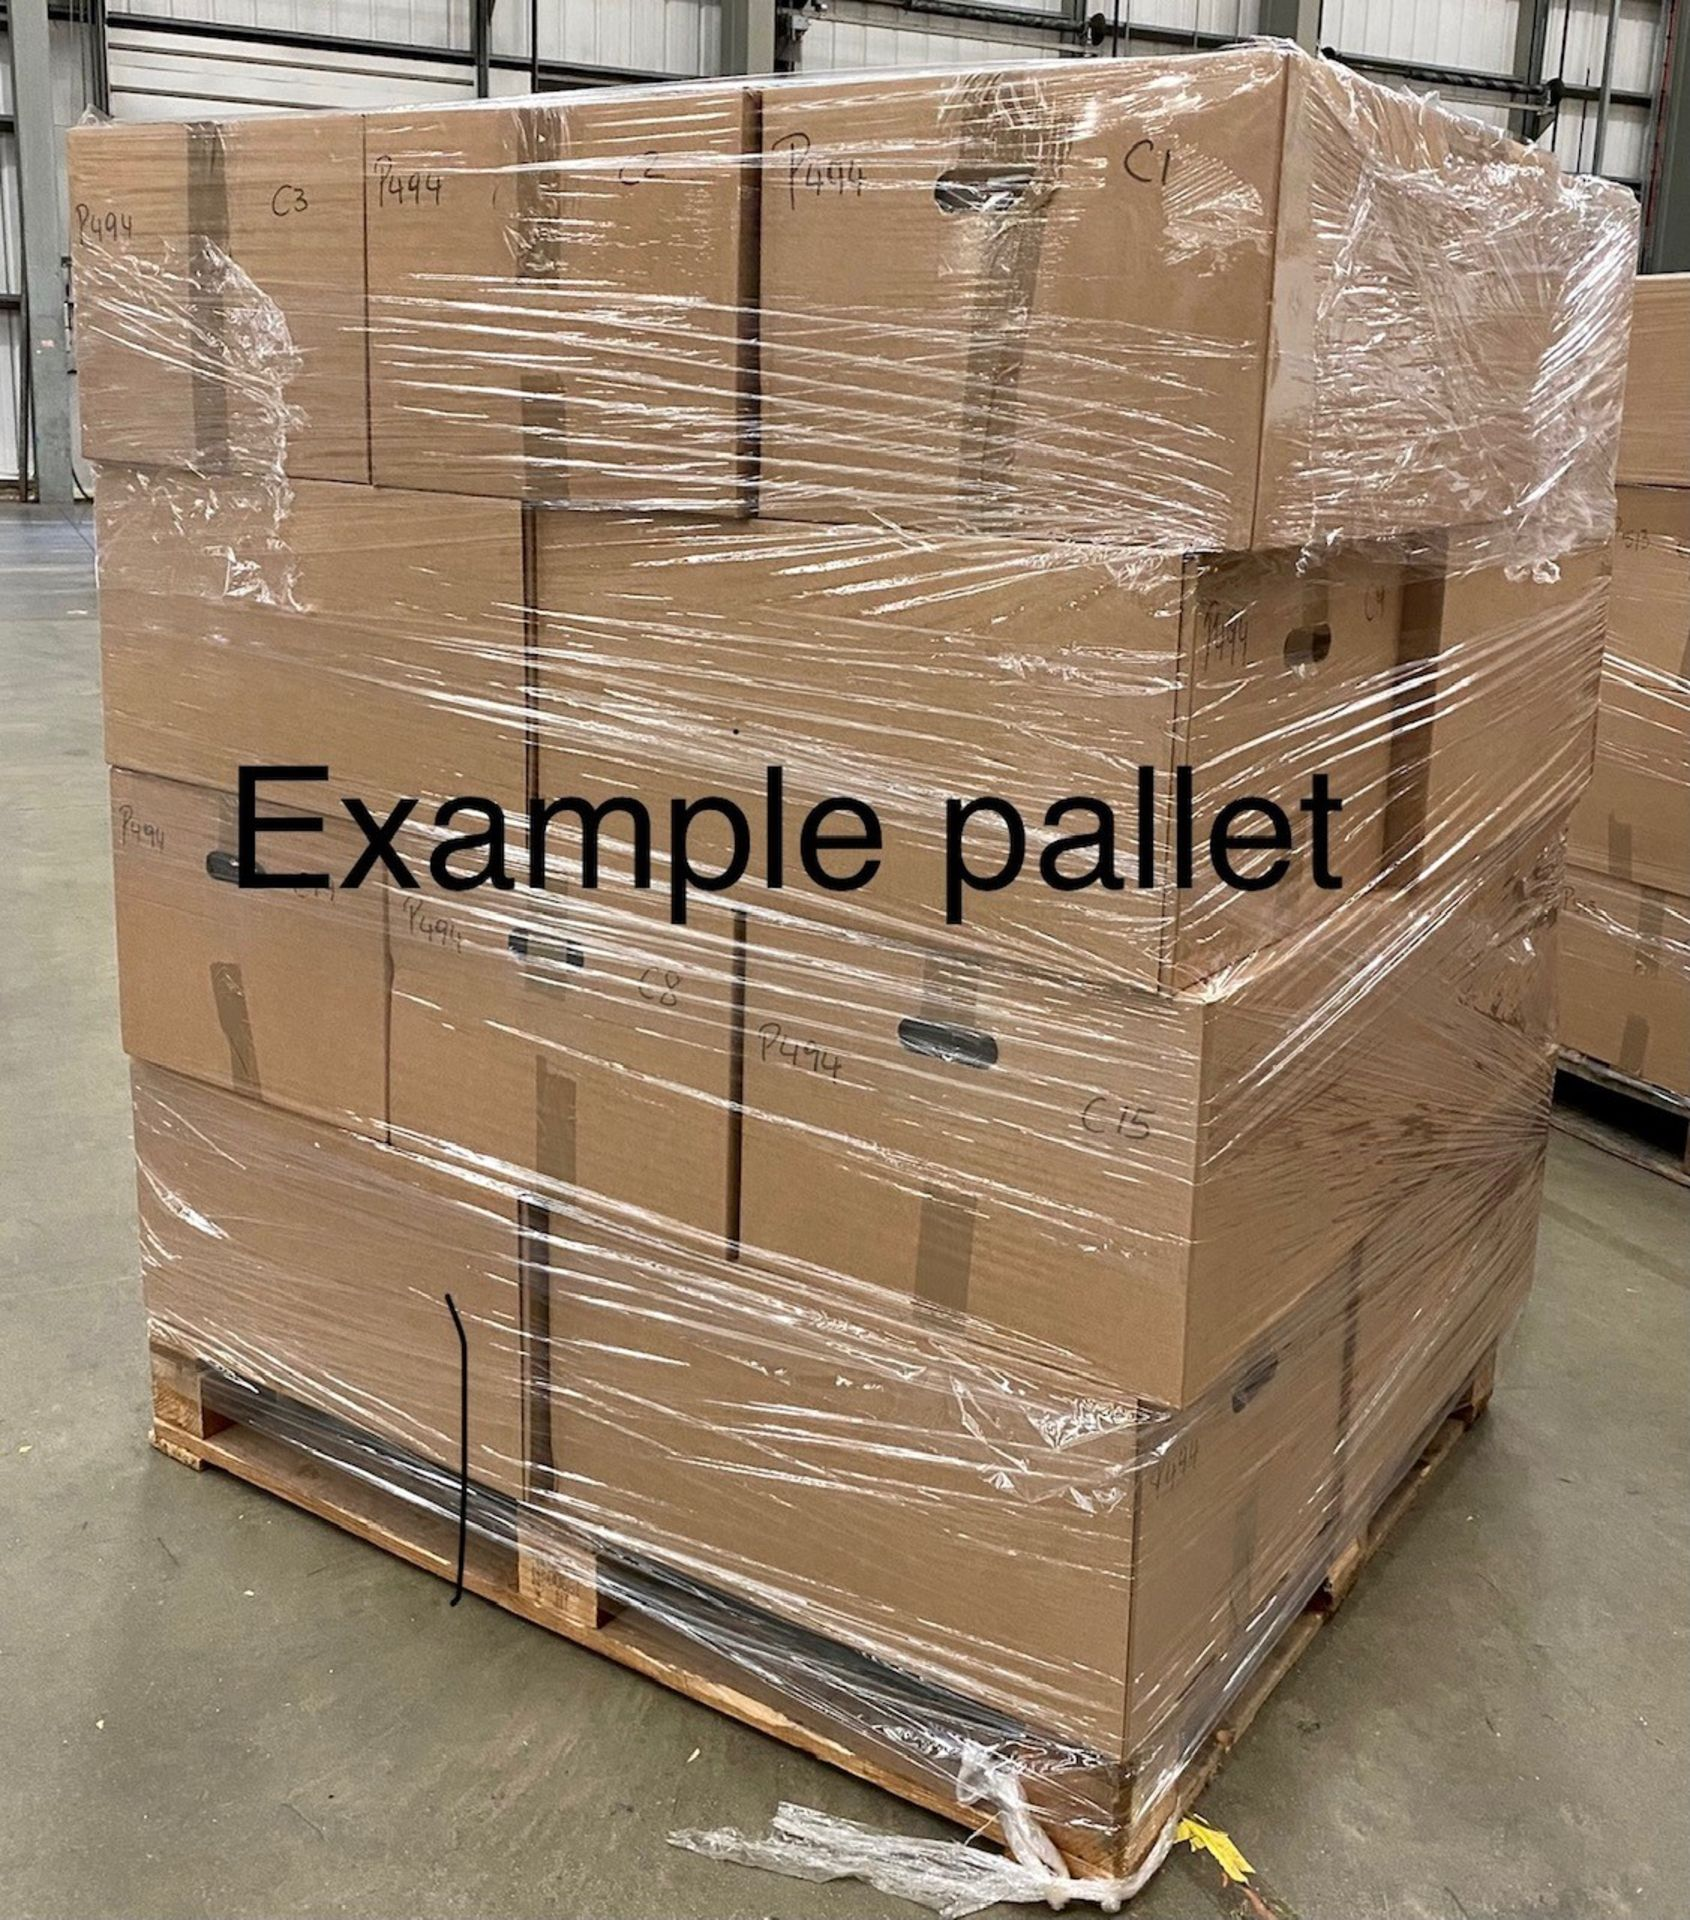 1 x mixed pallet = 351 items of Grade A M&S Womenswear Clothing. Total RRP £9366.50 - Image 10 of 10